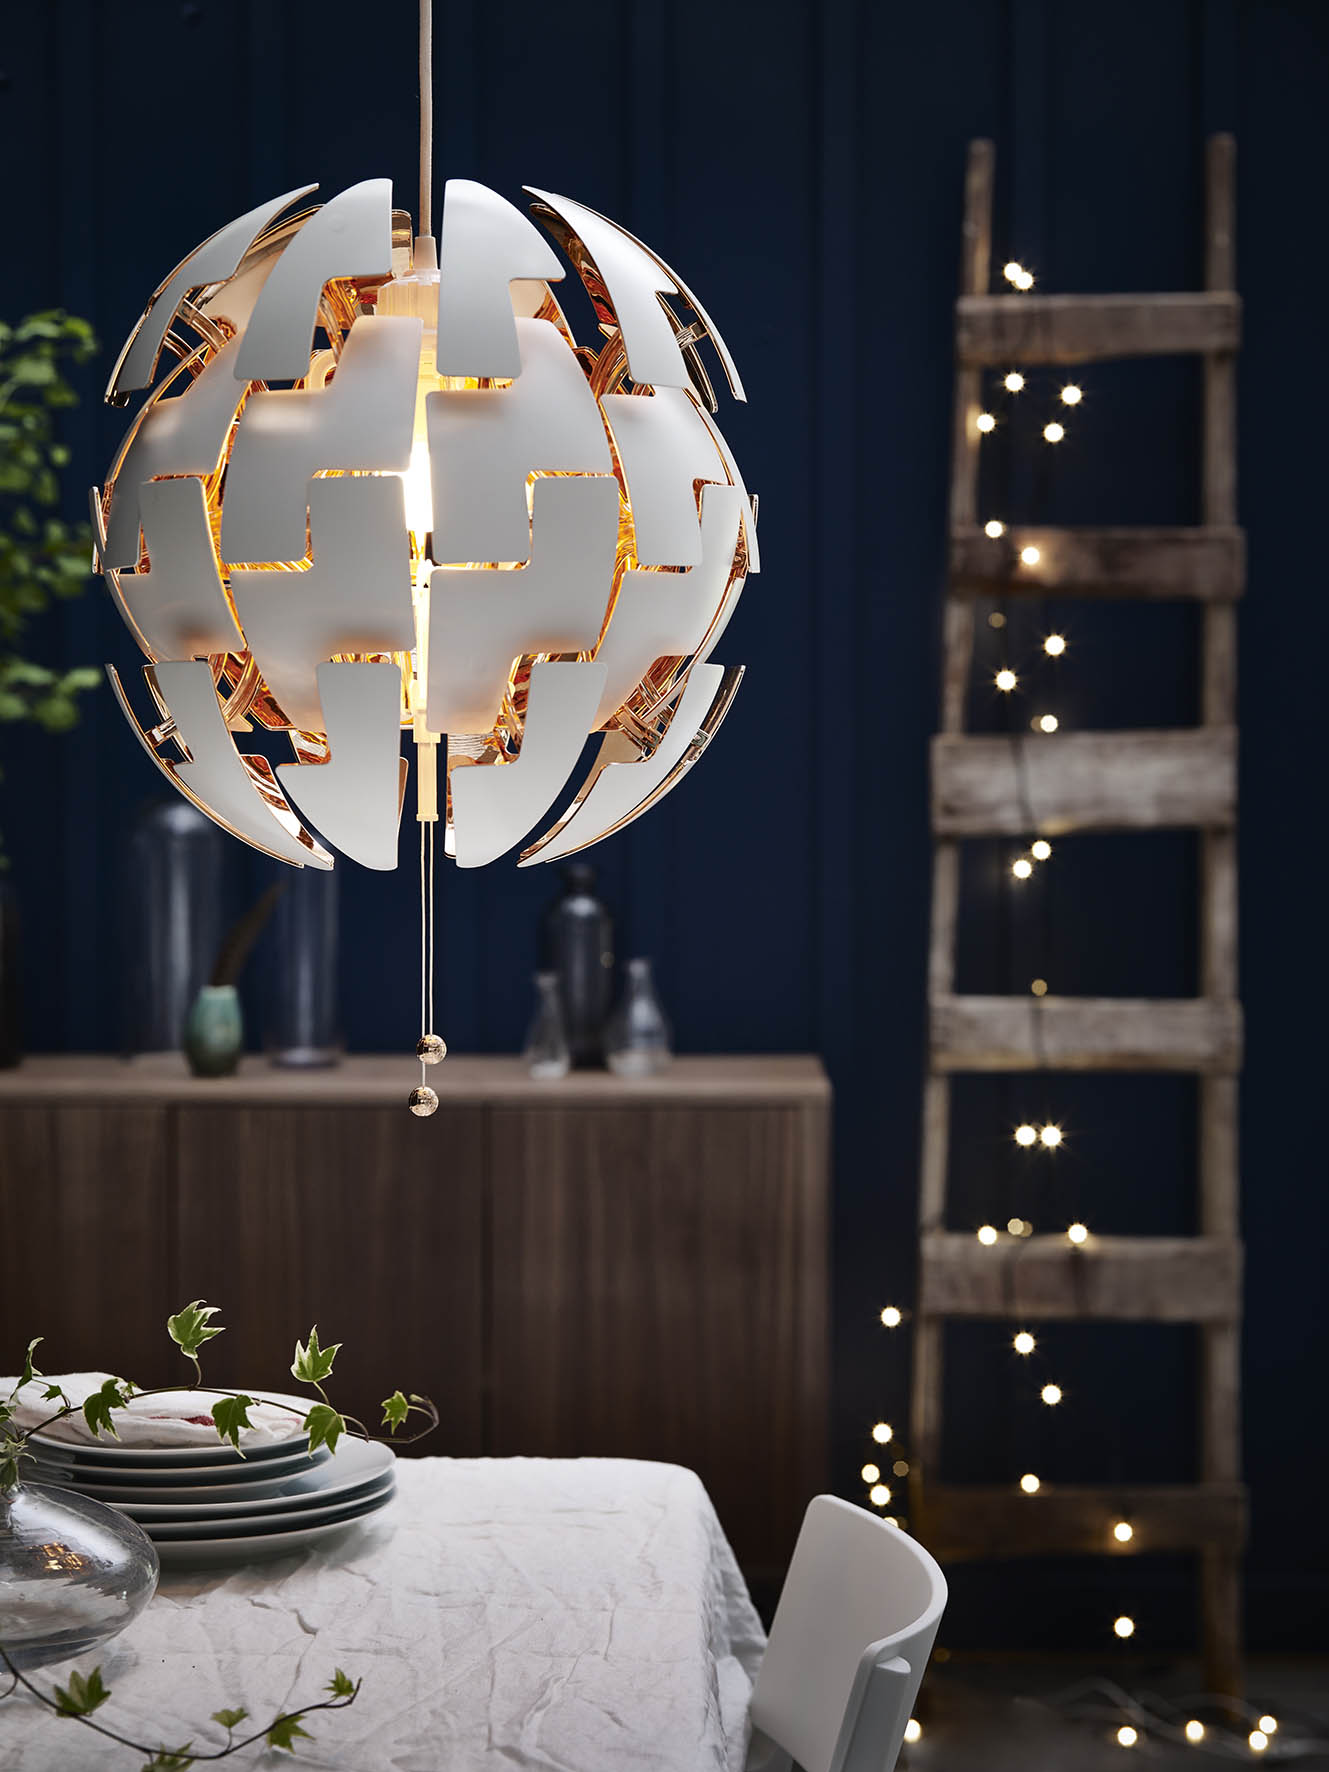 IKEA_PS_2014_LED_Hanglamp.jpg